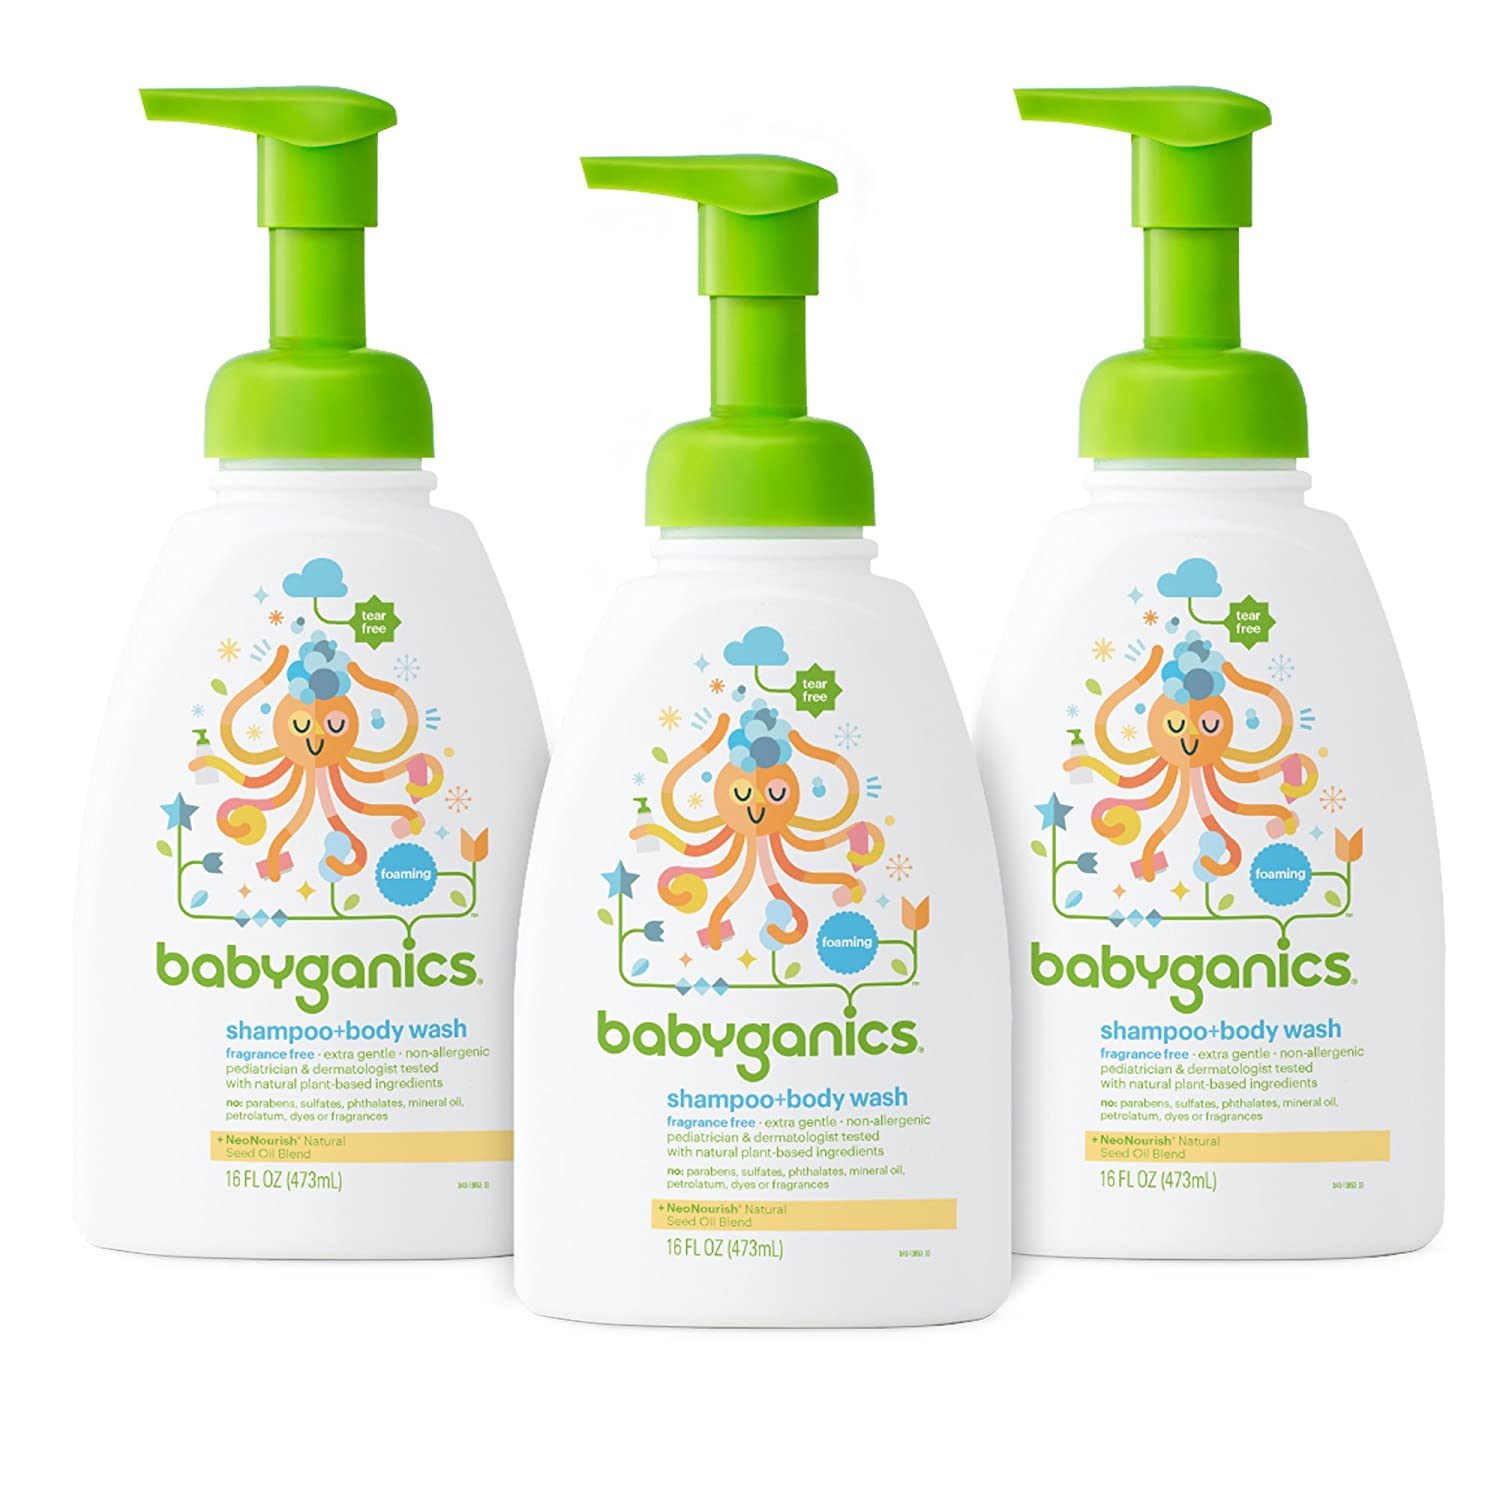 9 Best Organic Baby Shampoo Reviews of 2021 Parents Can Buy 16